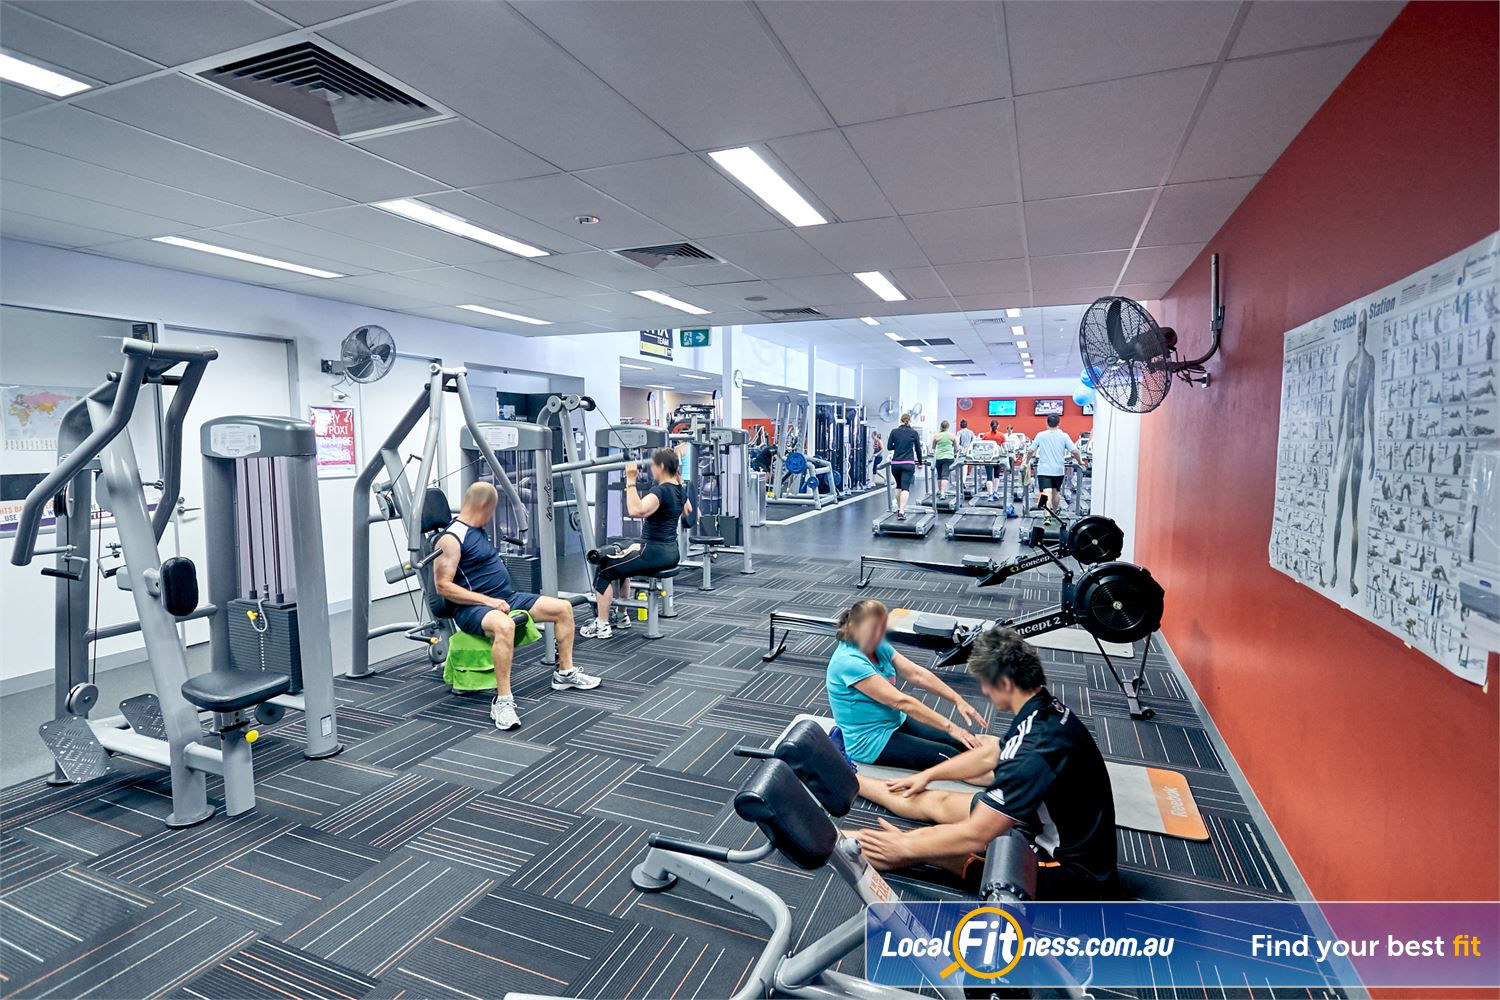 Goodlife Health Clubs Cross Roads Near Lower Mitcham Our Westbourne Park gym boastssome of South Australia's best fitness facilities.